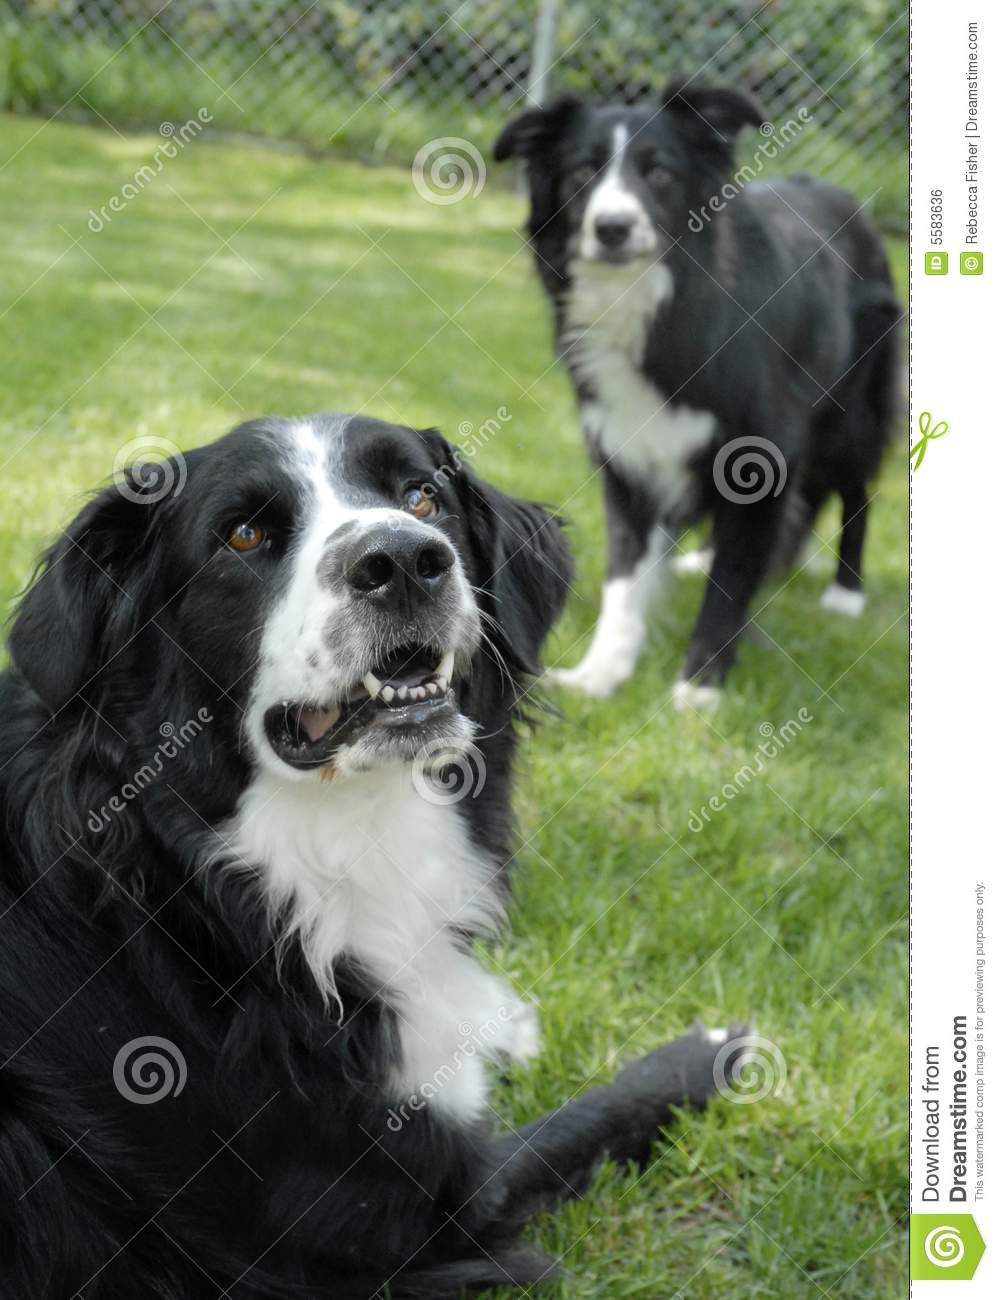 Similar stock images of two black and white border collie dogs